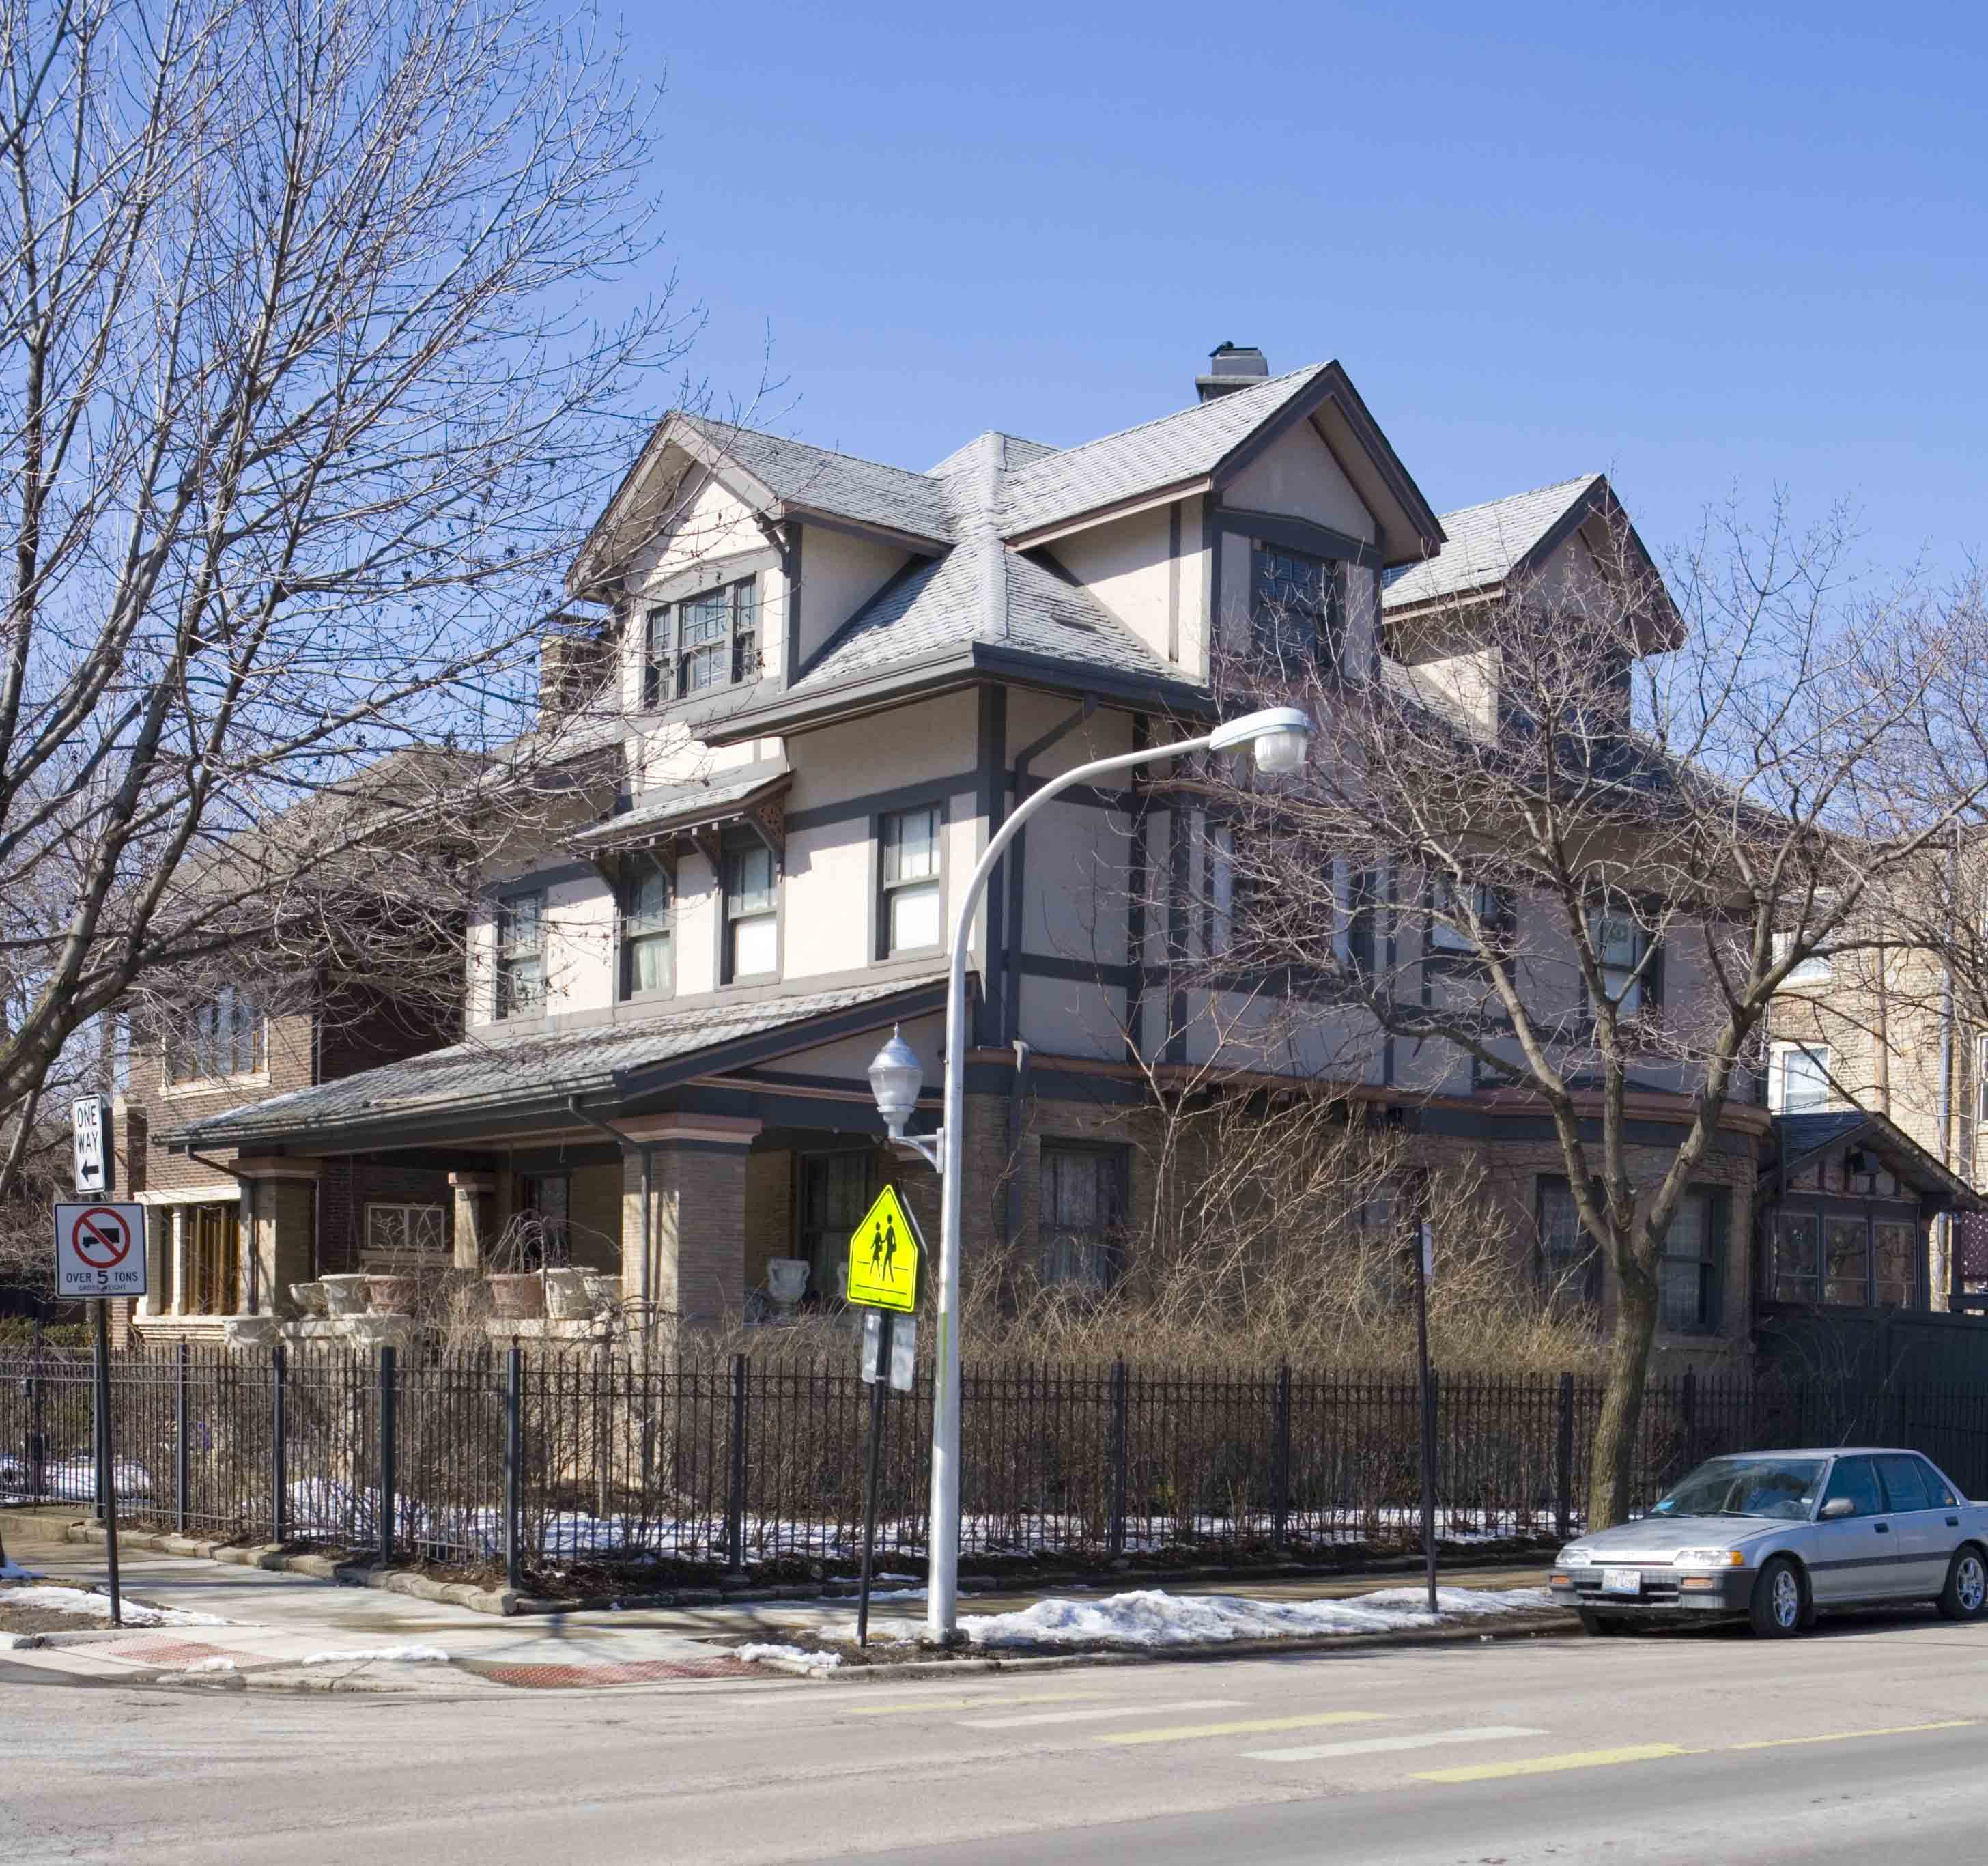 Uptown's Hutchinson Street is home to palatial mansions near the lake.